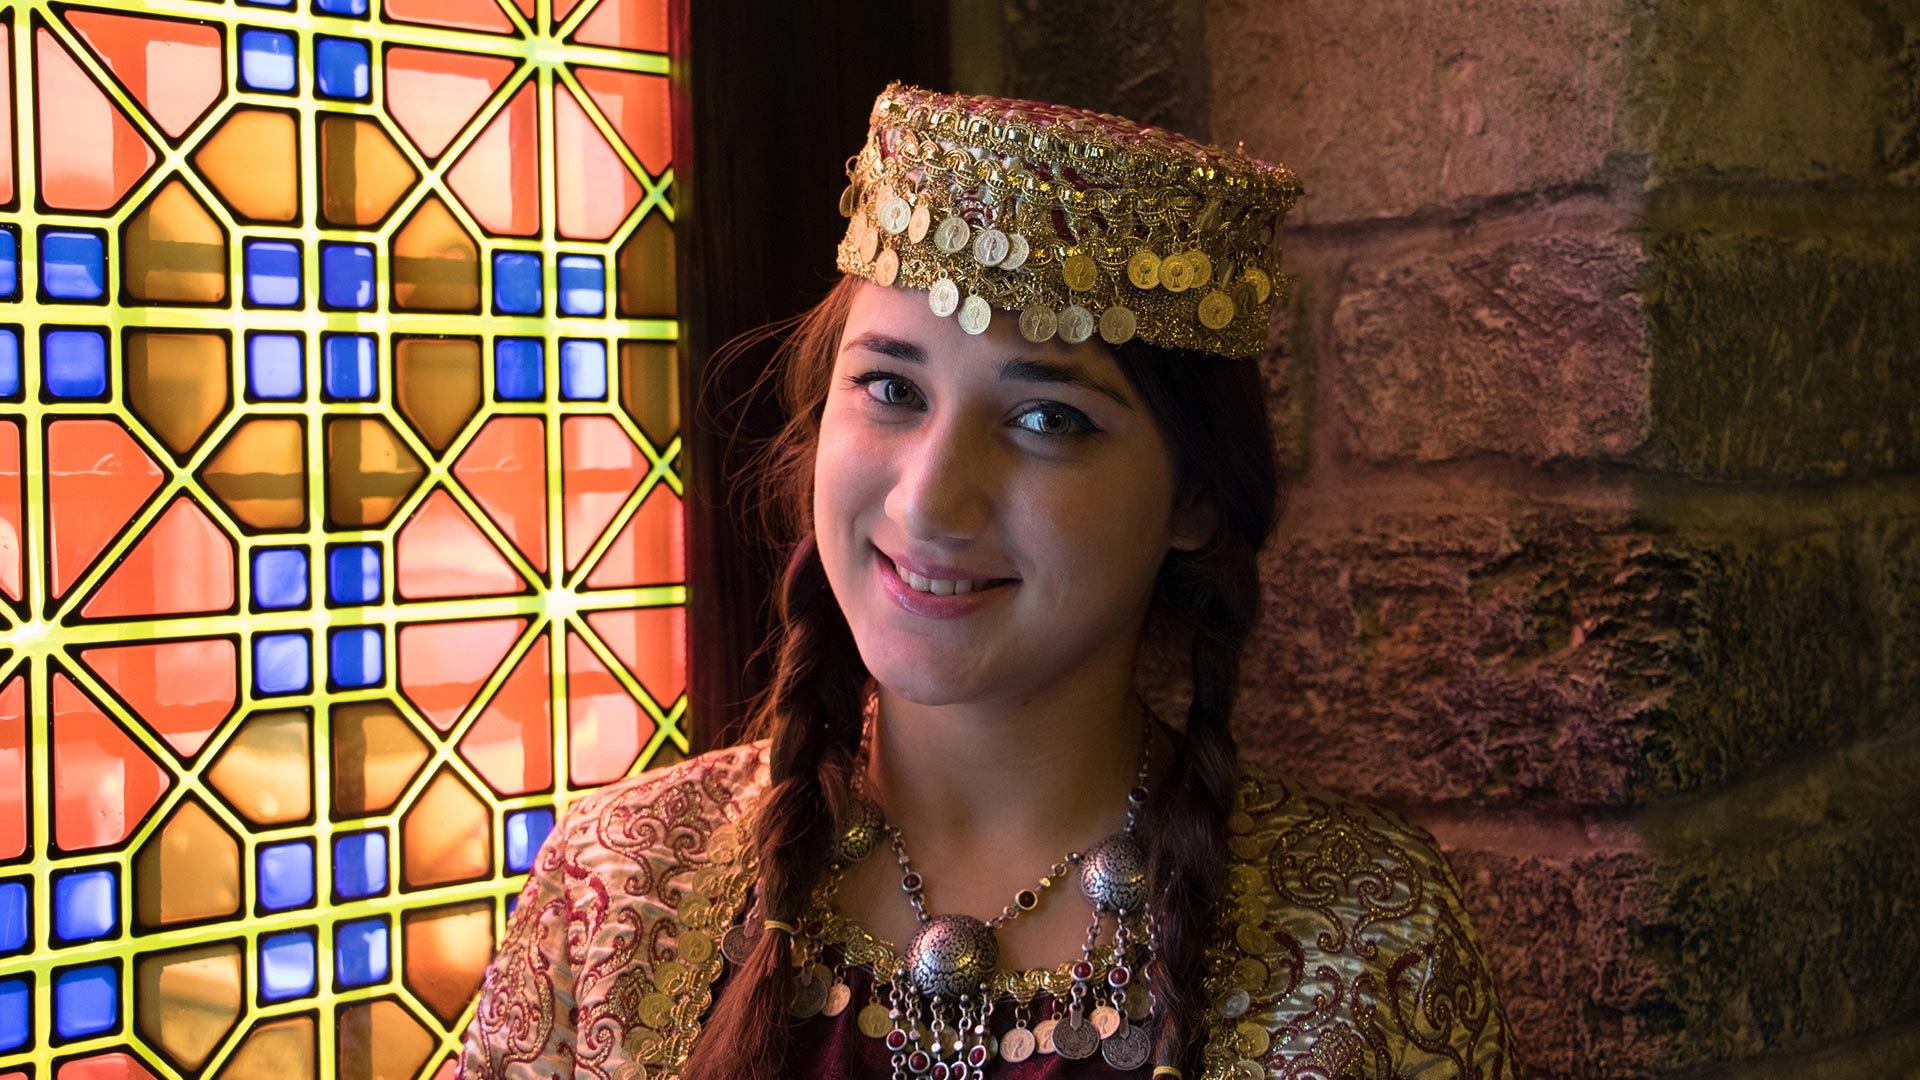 Beautiful smiling woman, baku, azerbiajan